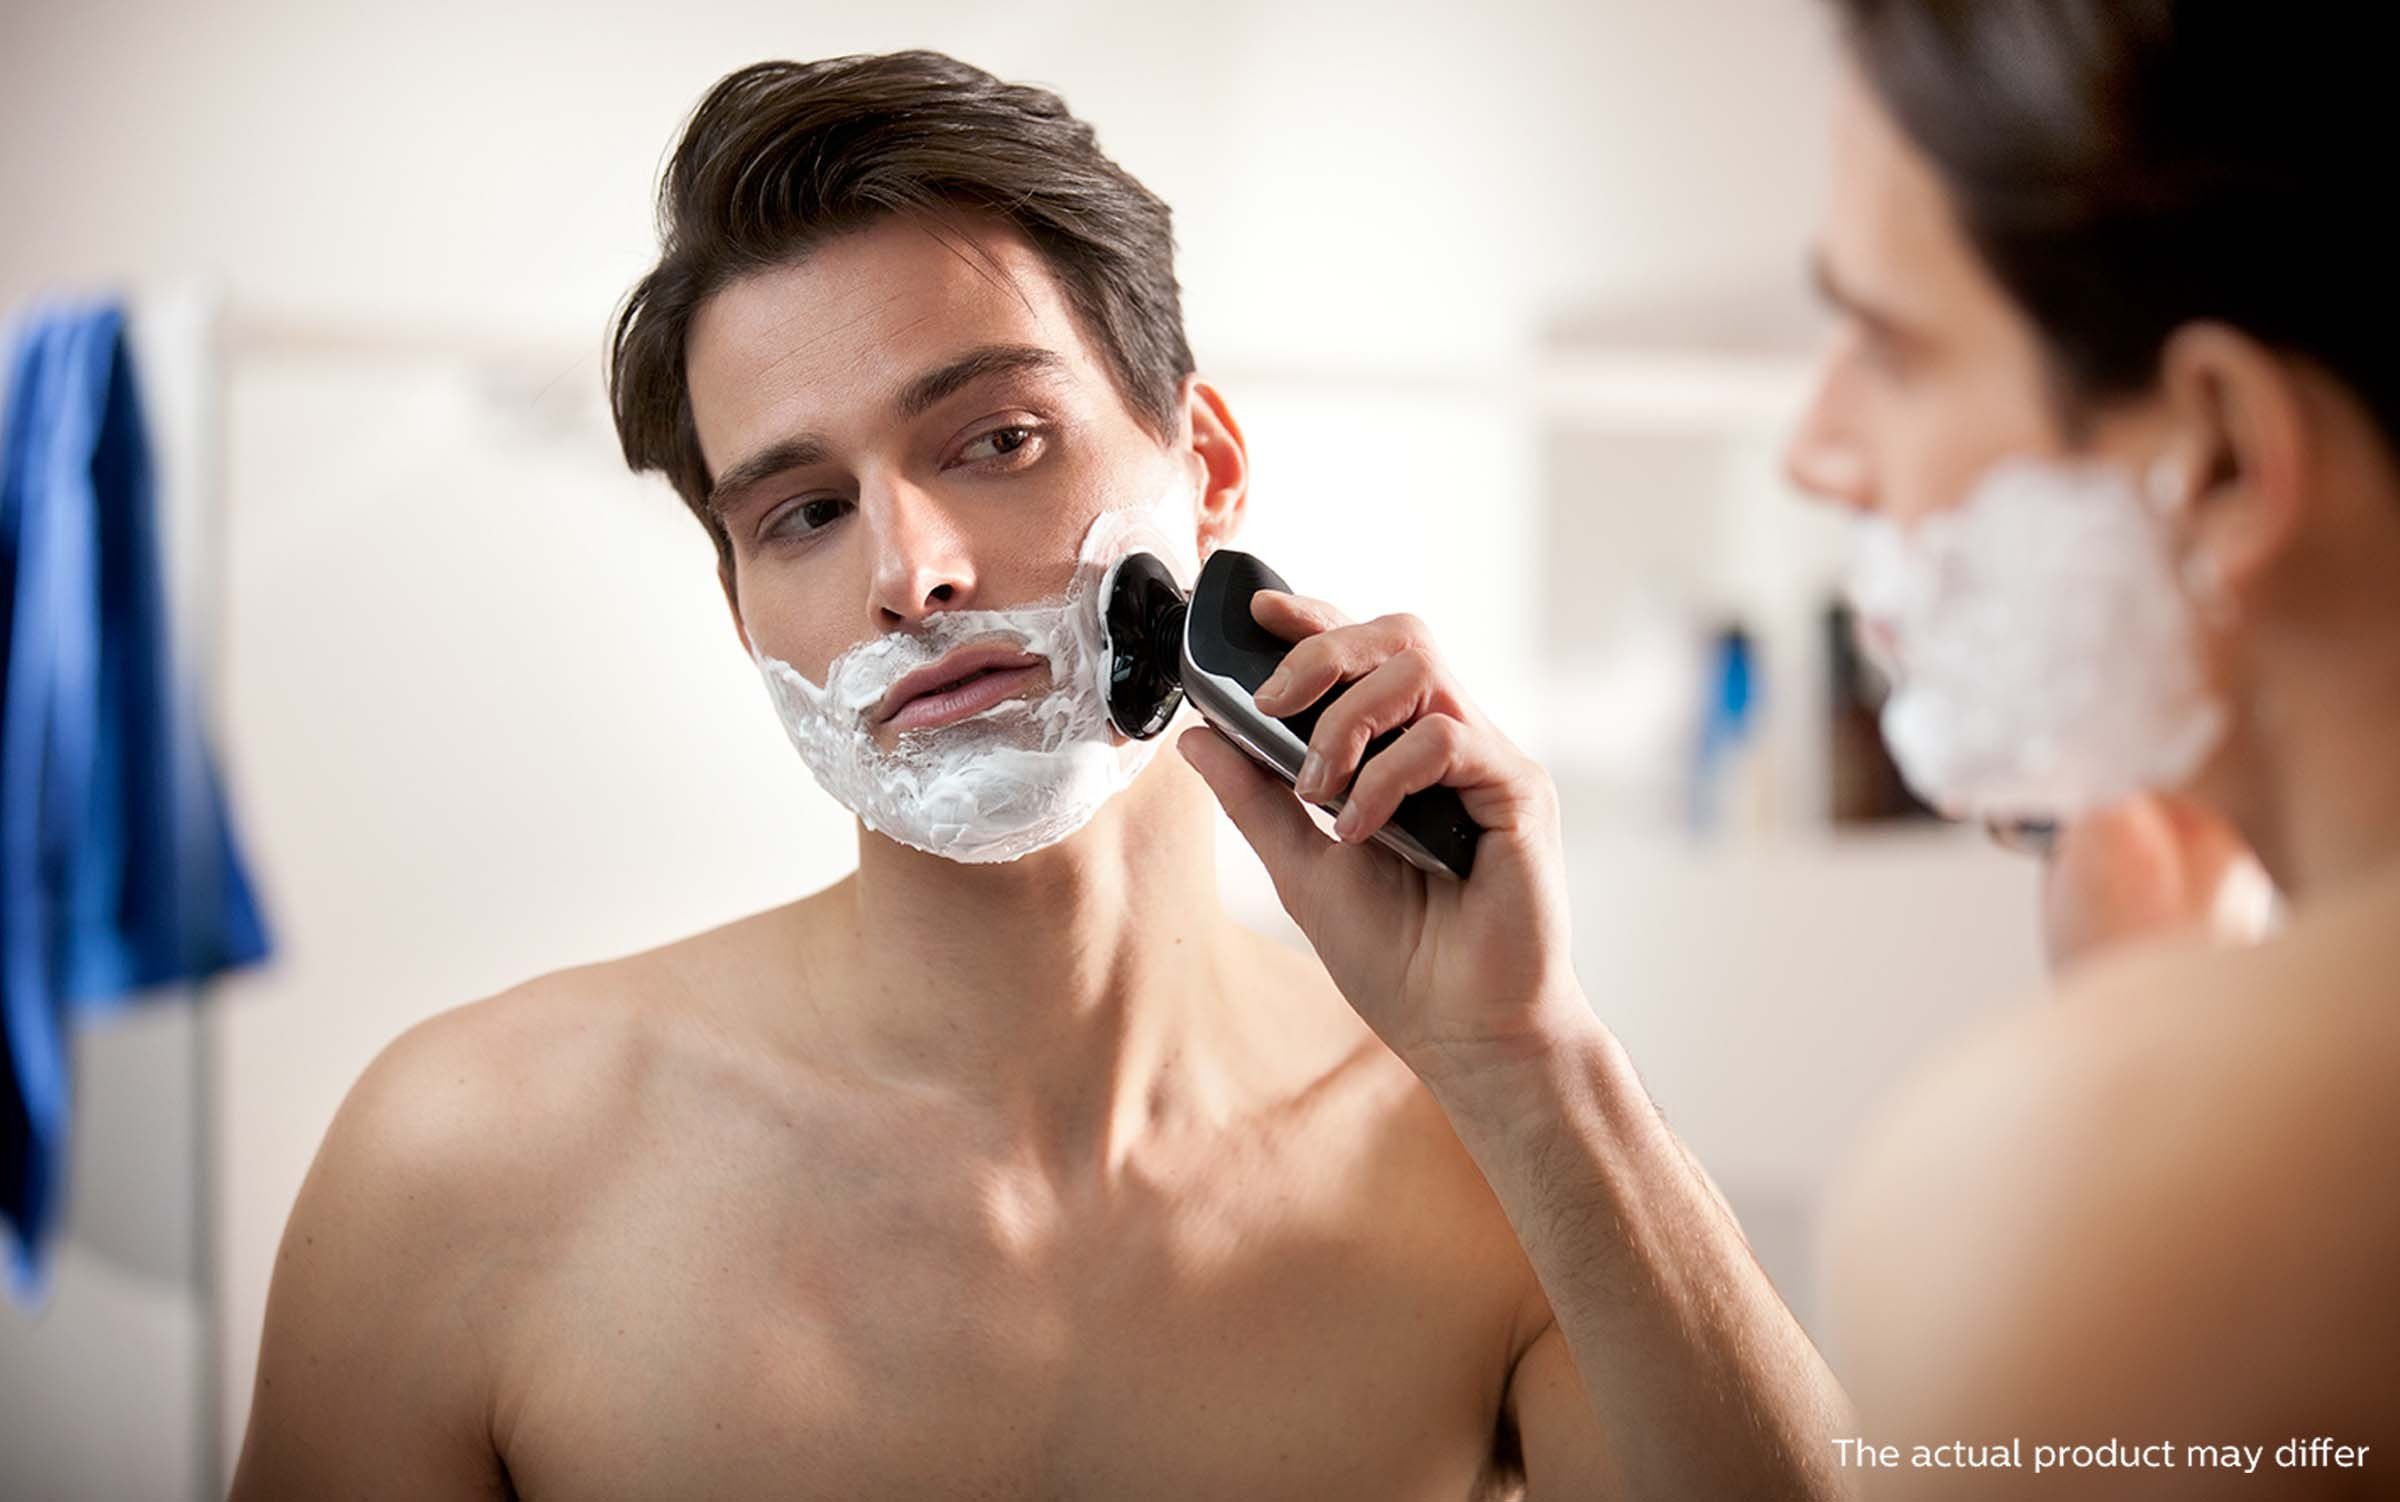 Philips Norelco Electric Shaver 9700, Cleansing Brush by Philips Norelco (Image #6)